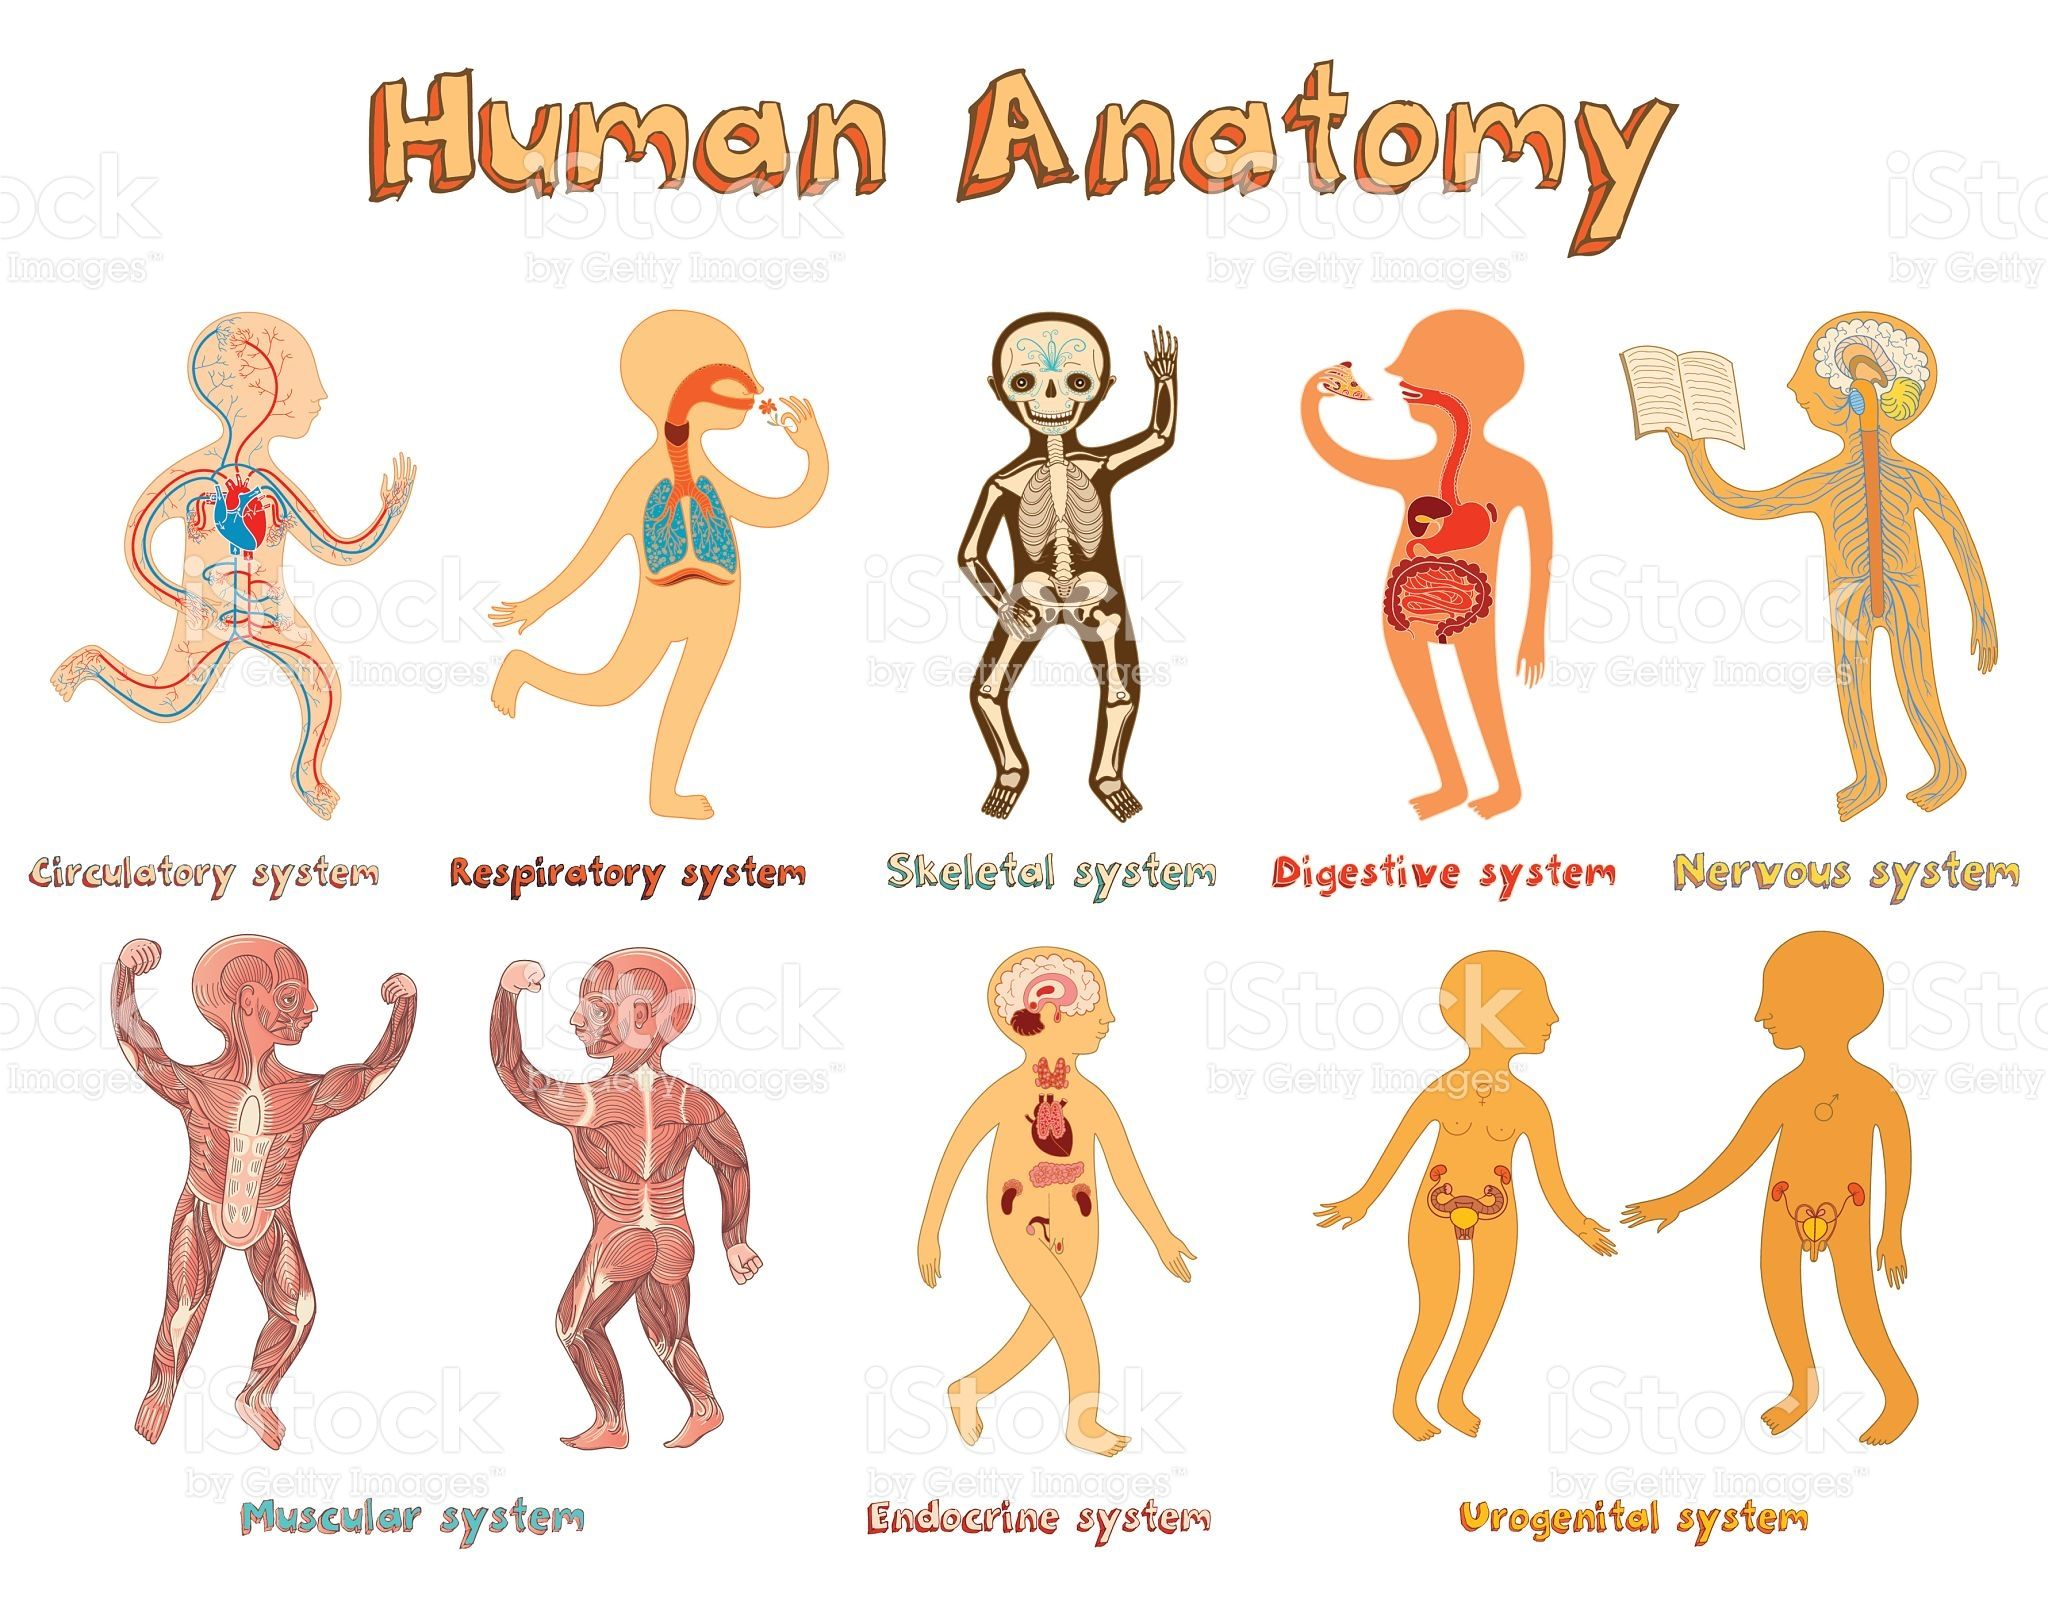 educational illustration of human anatomy systems of organs for in 2020 menschen illustration menschliche anatomie illustration educational illustration of human